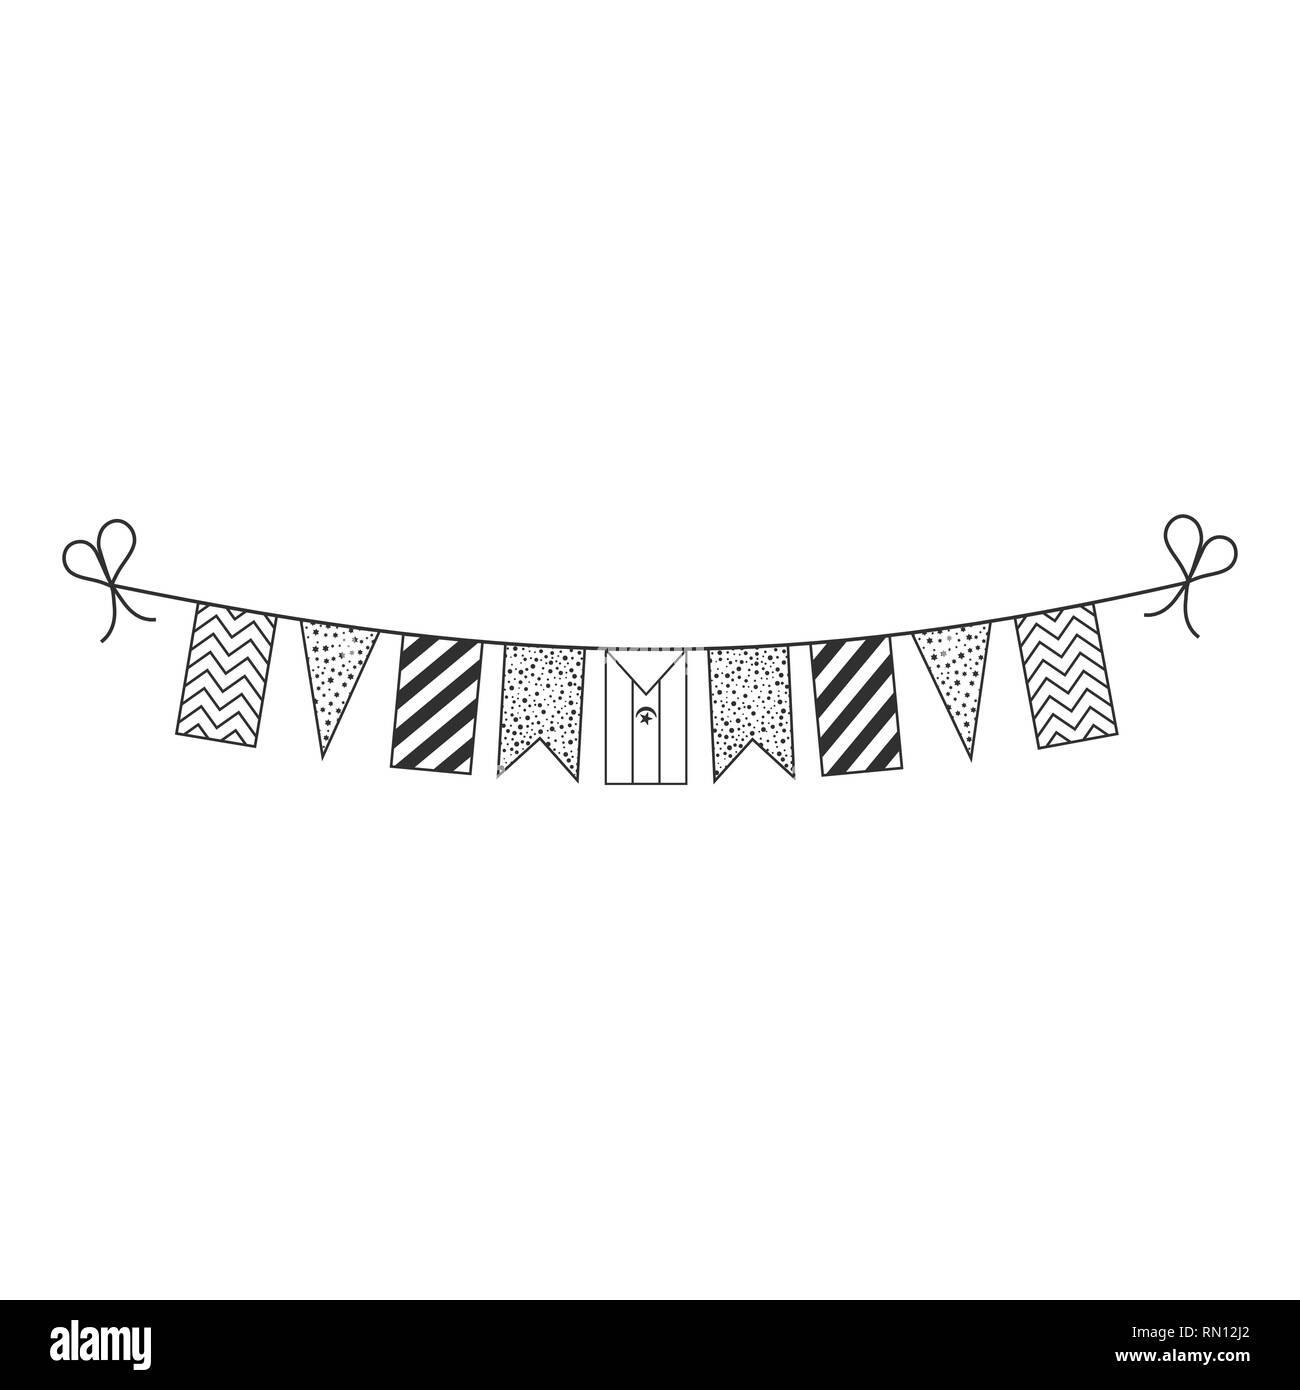 Decorations bunting flags for Western Sahara national day holiday in black outline flat design. Independence day or National day holiday concept. - Stock Image